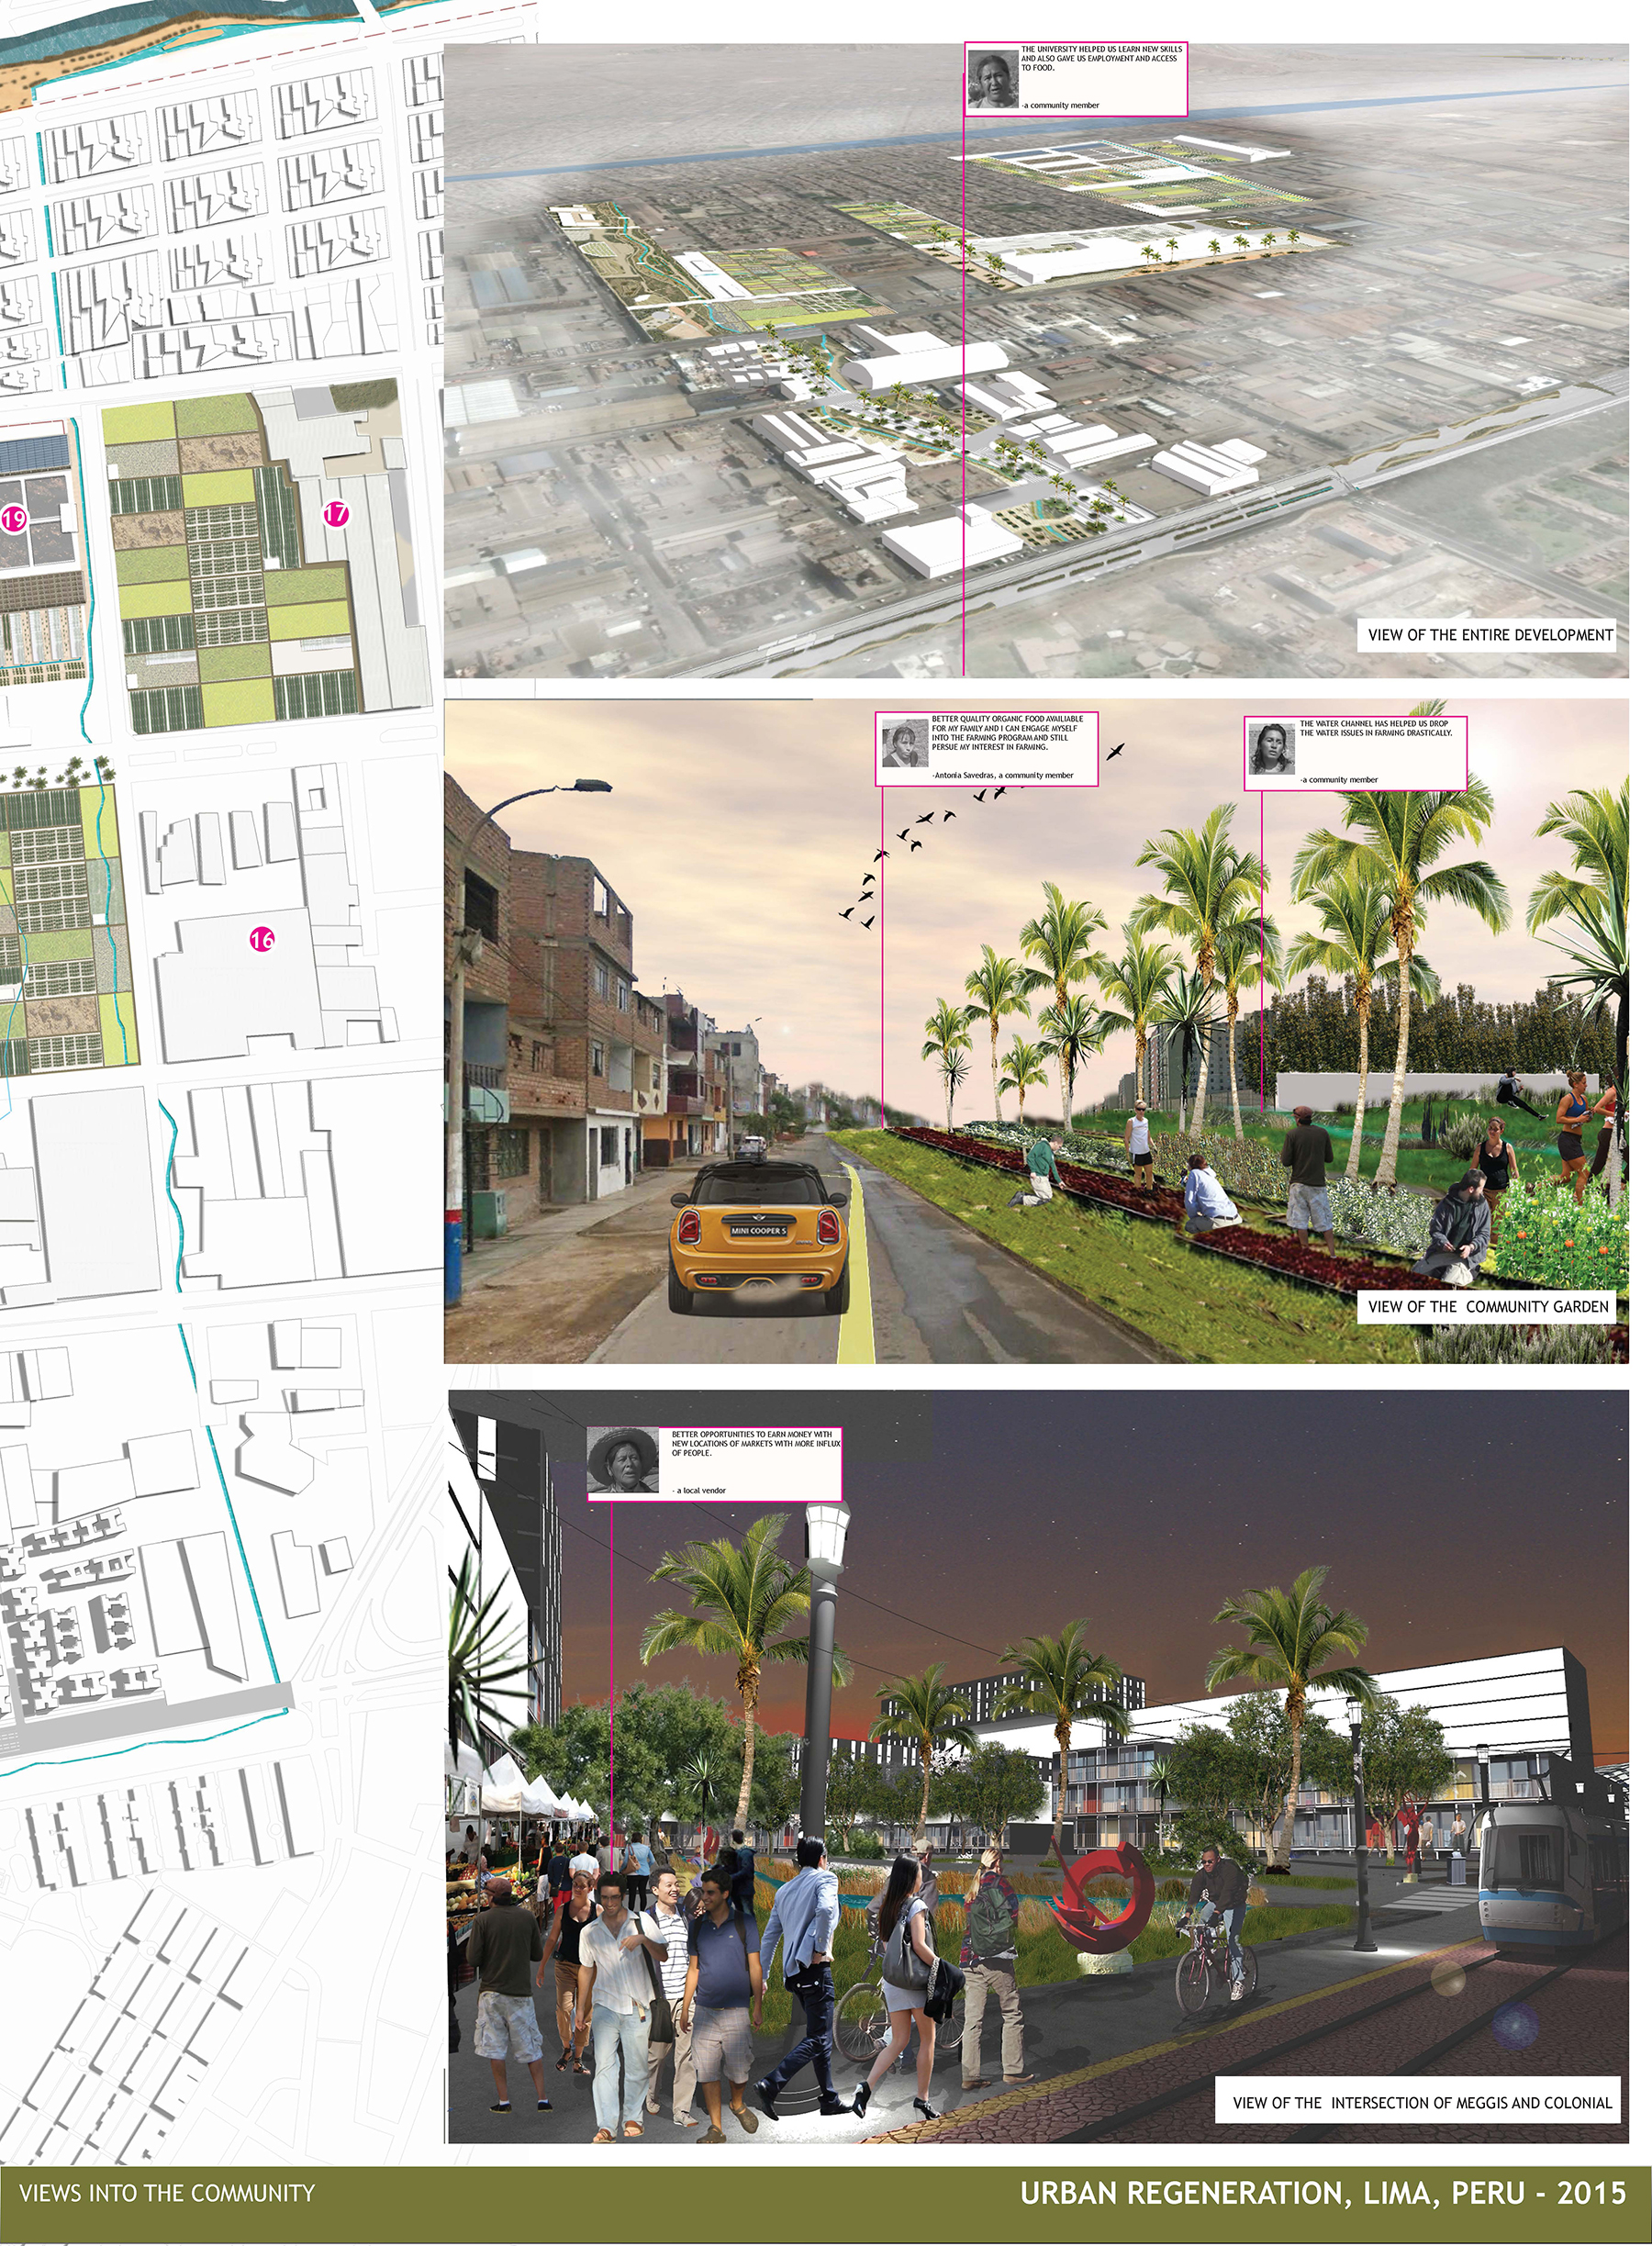 Regenerating Productive Urbanscape - Lima, Peru - Views into the community by Sonal Mamgain